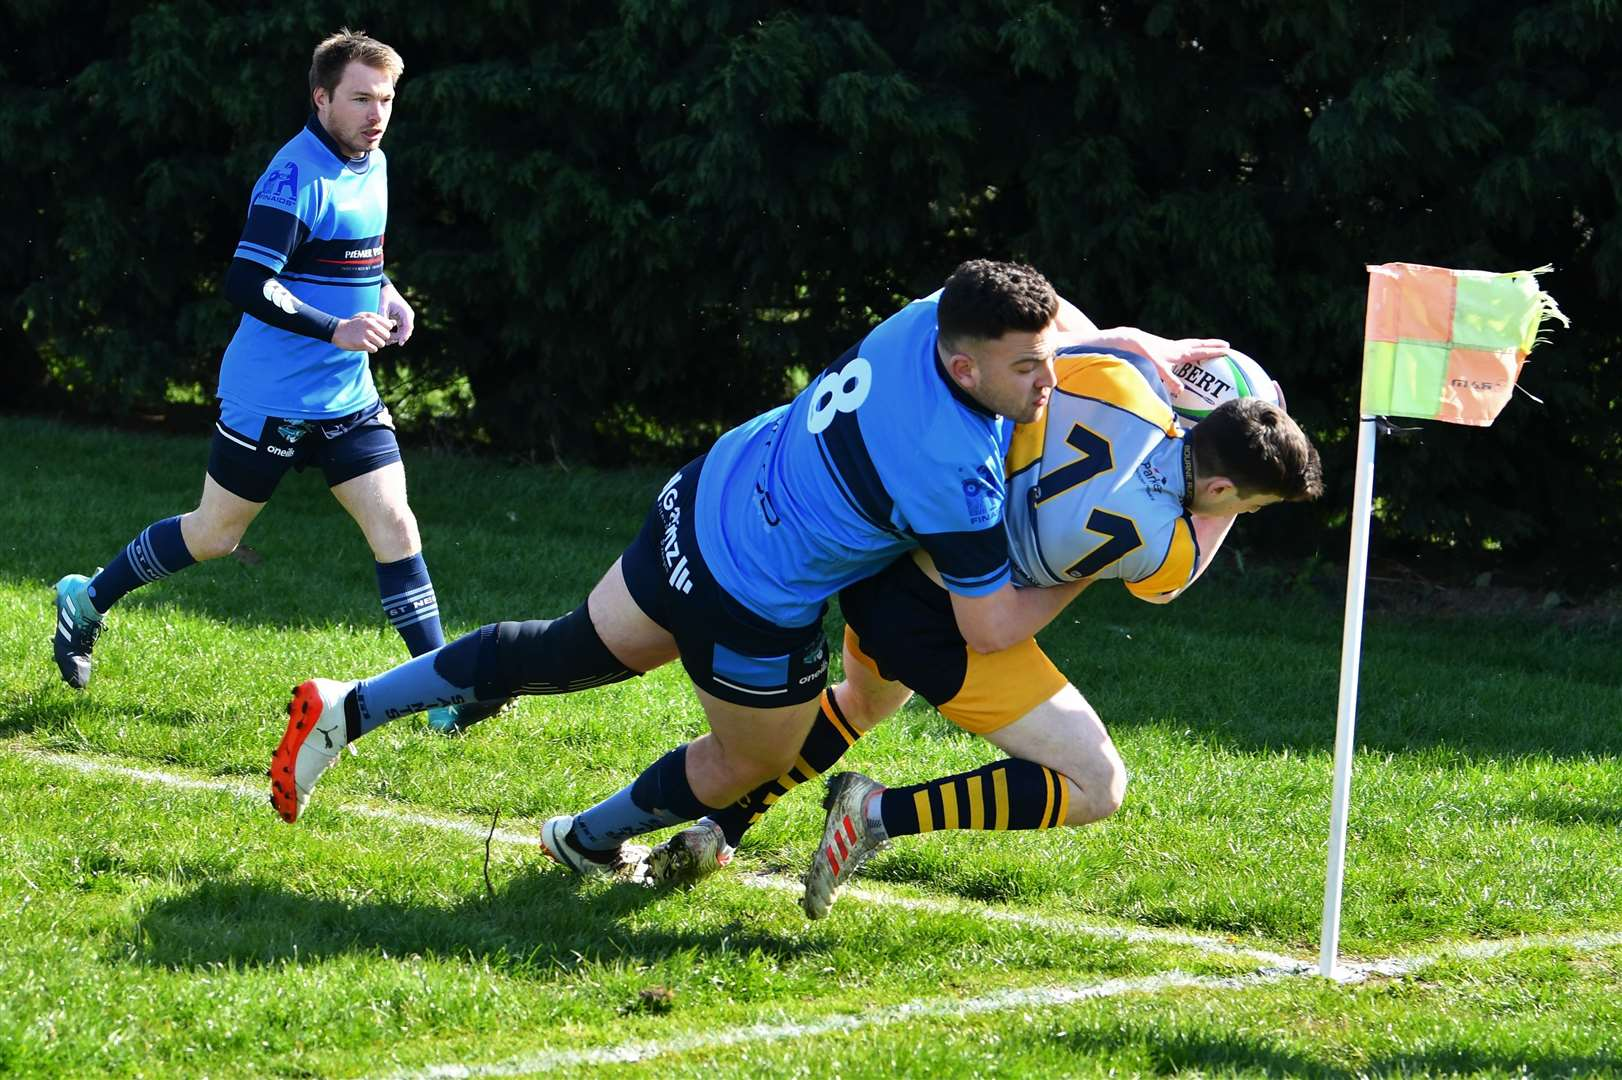 Bourne were 73-7 victors over St Neots on Saturday. Photo: Alan Hancock (8605641)